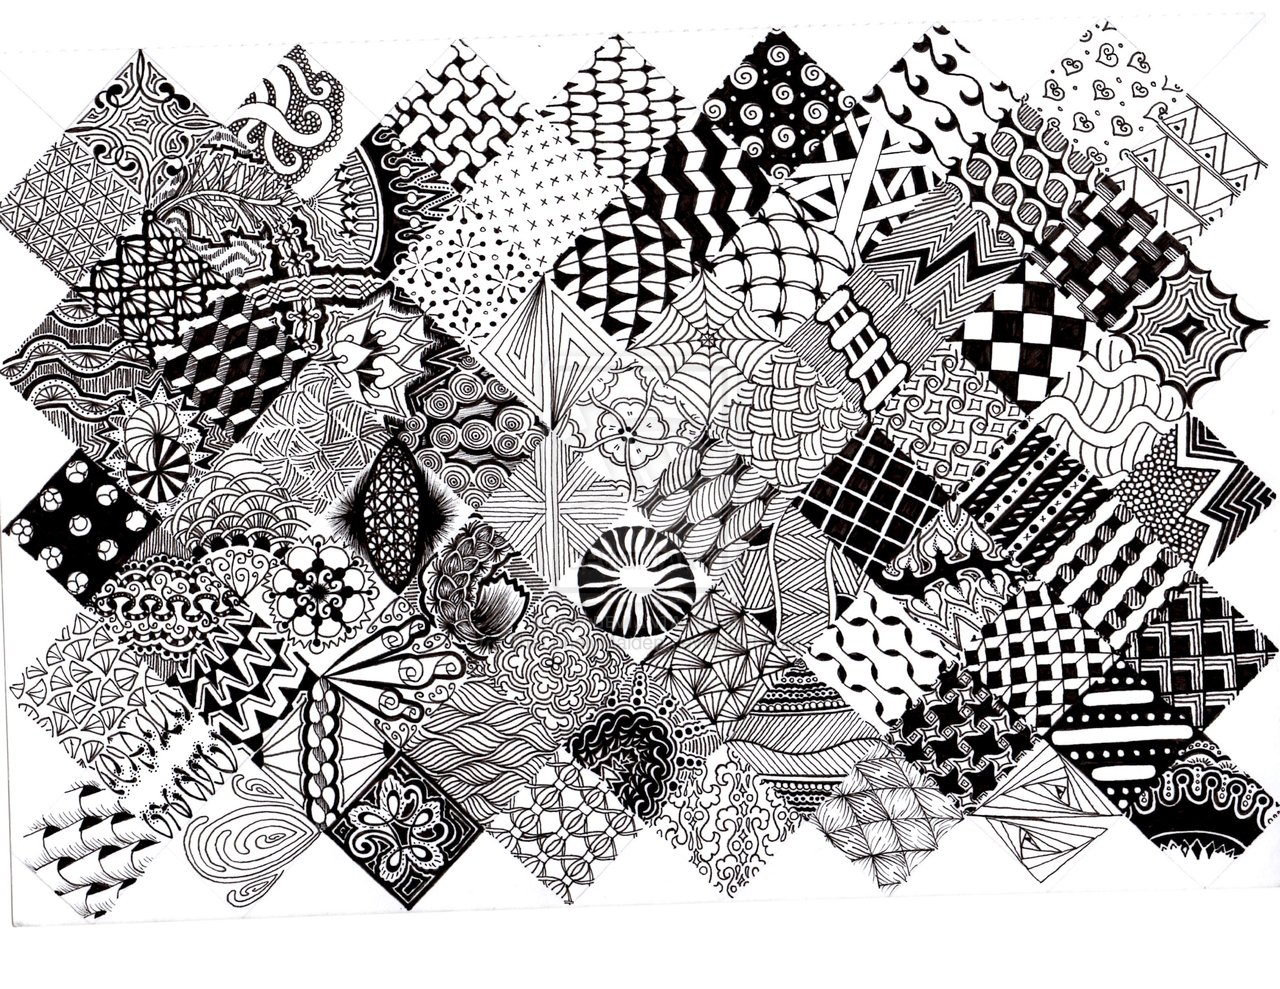 Zentangle Design Trend: 35 Inspiring Examples | Inspirationfeed